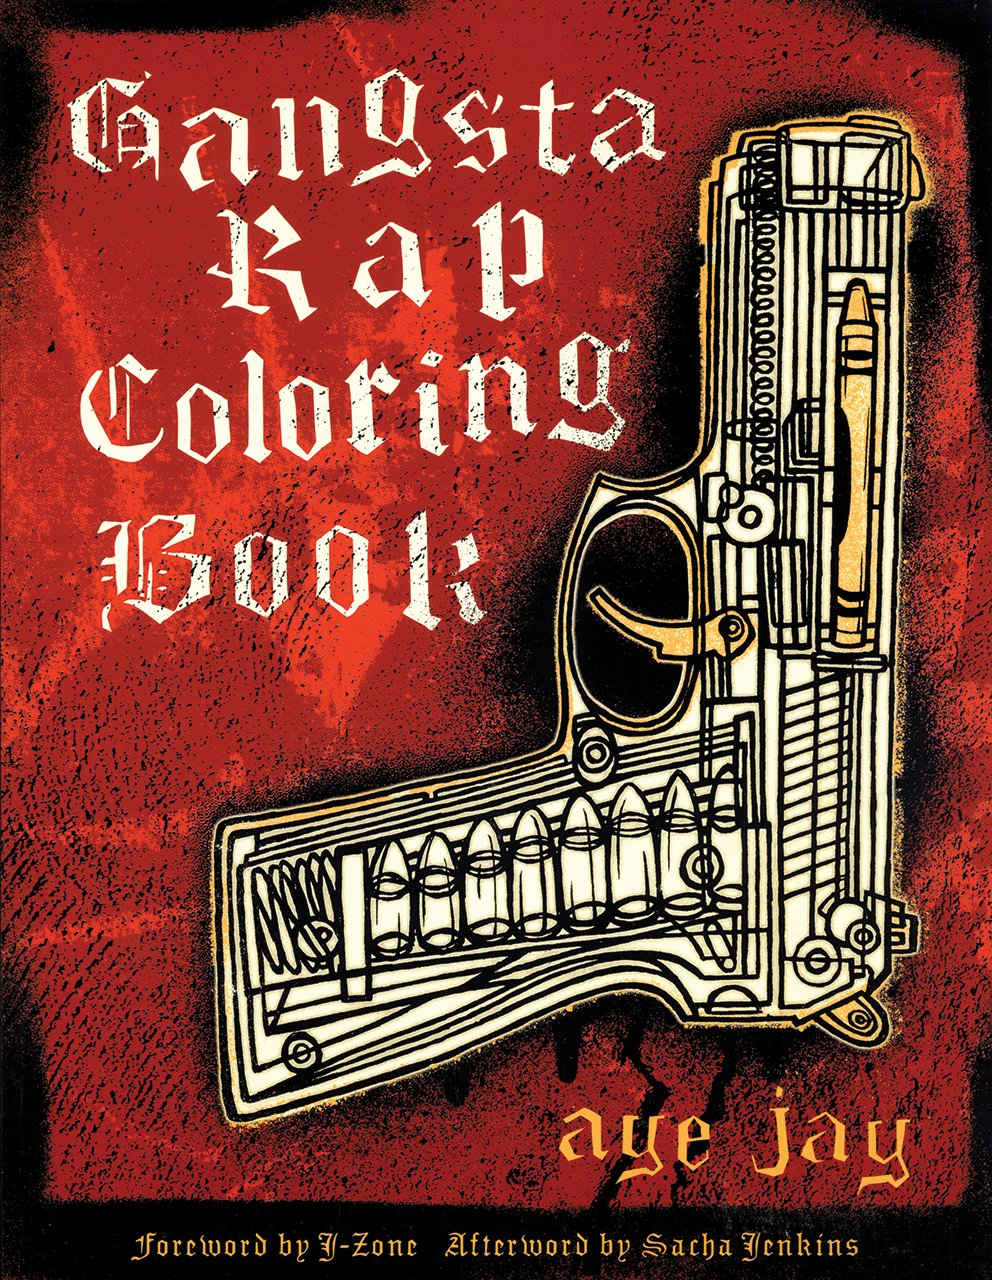 gangsta rap coloring book anthony aye jay morano 9780867196047